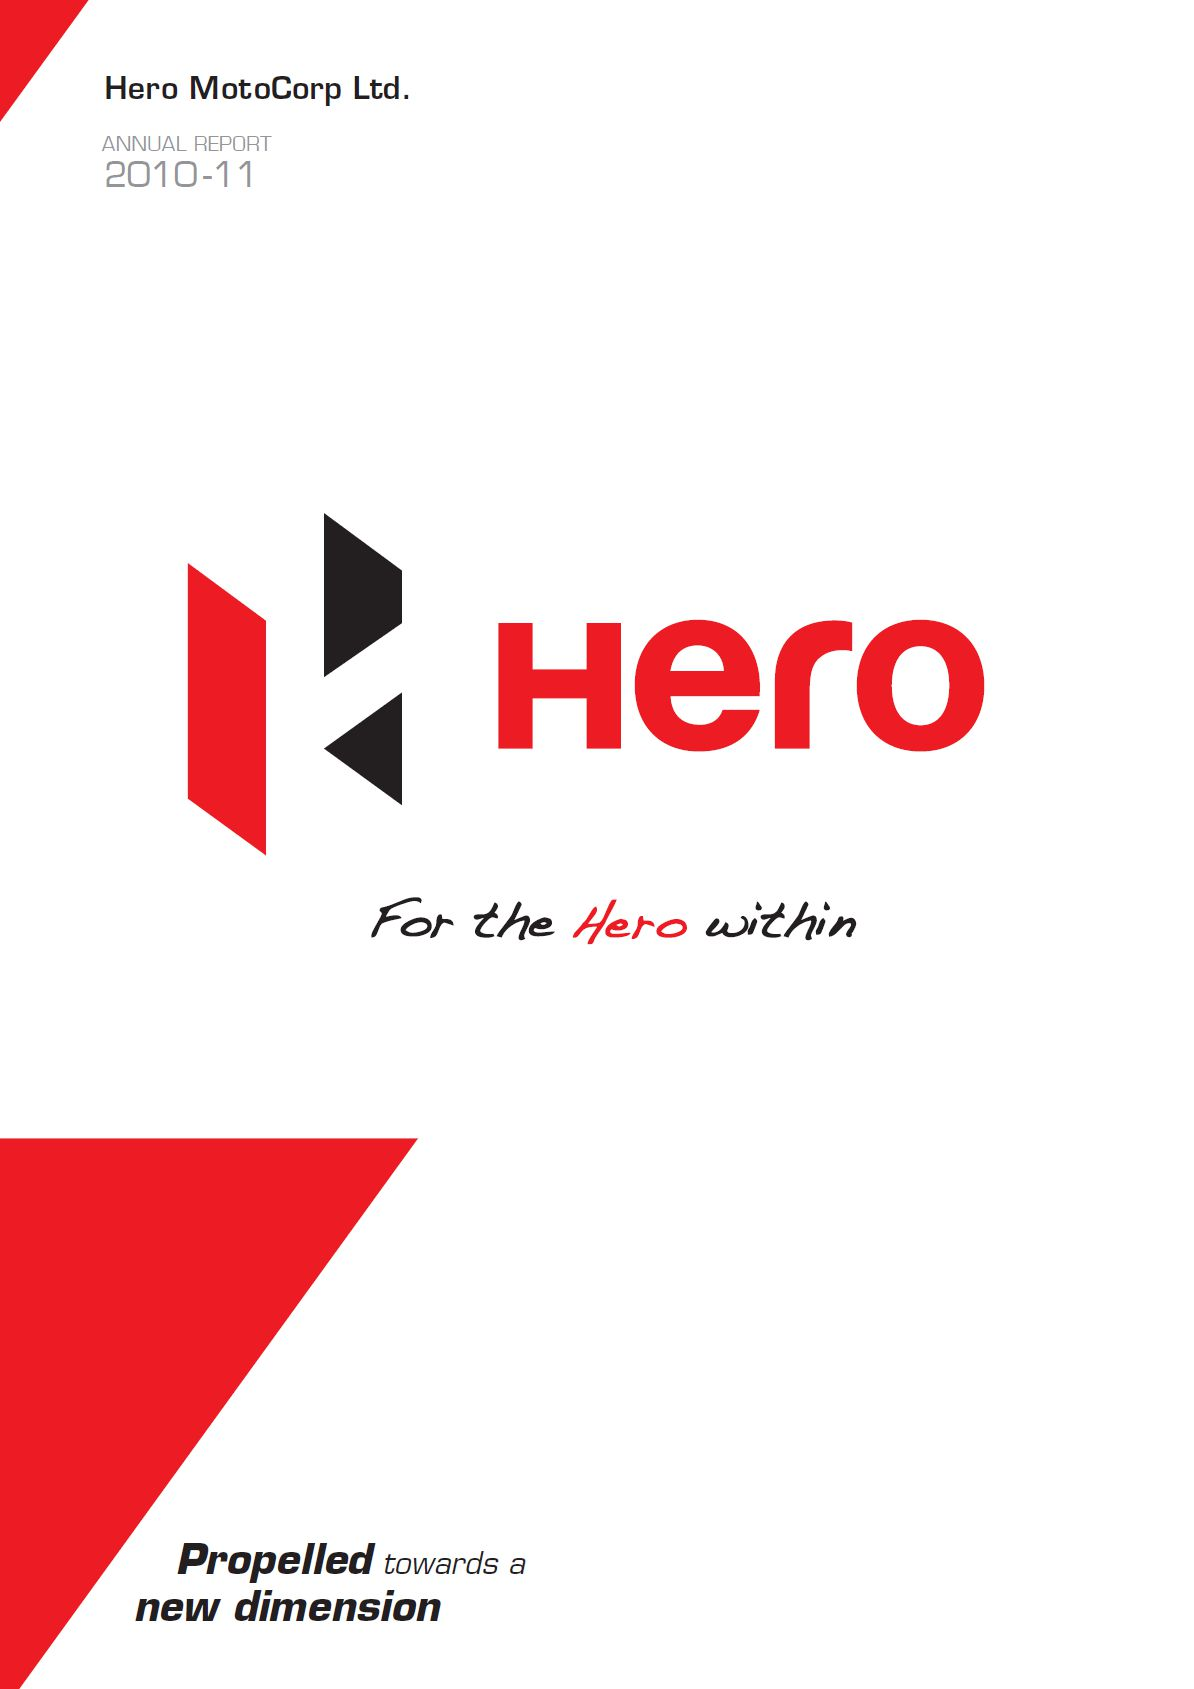 LACP 2011 Vision Awards Annual Report Competition  Hero MotoCorp Ltd  AICL Communications Limited